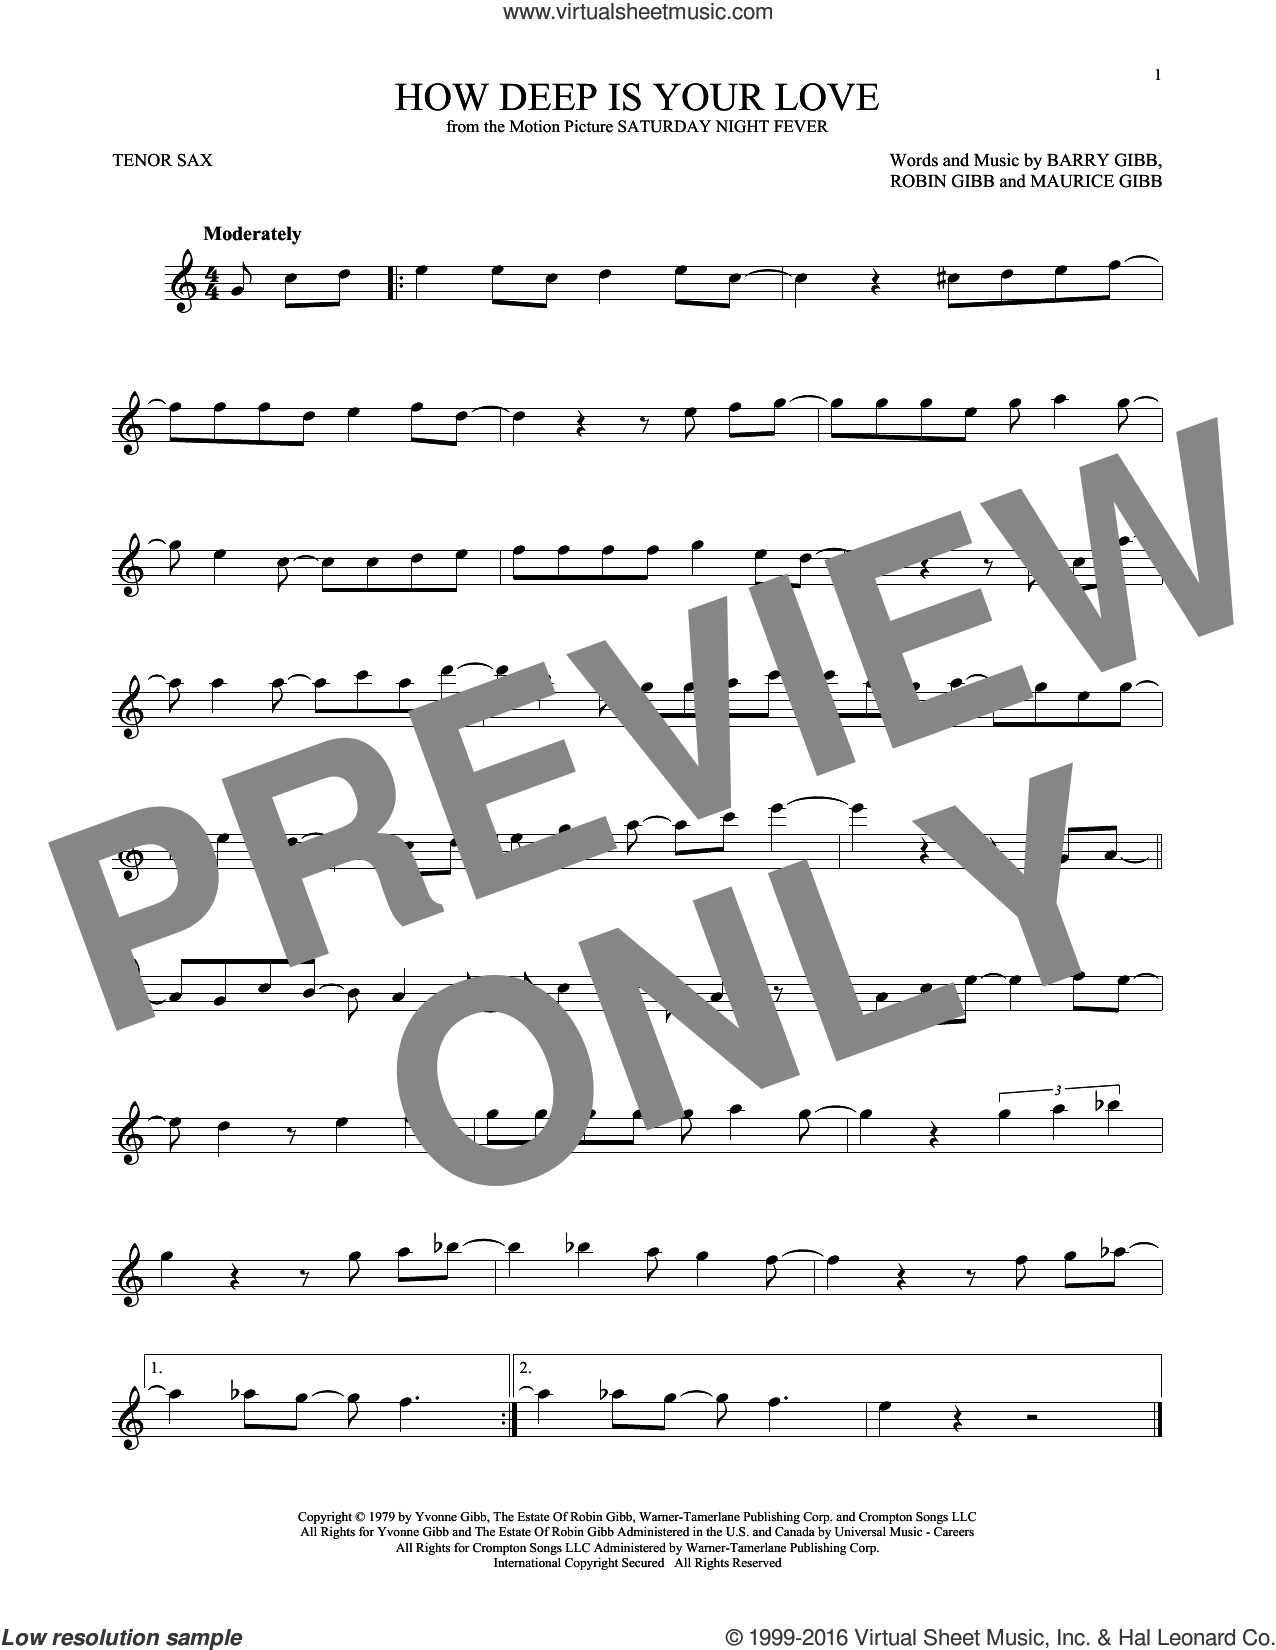 How Deep Is Your Love sheet music for tenor saxophone solo by Barry Gibb, Bee Gees, Maurice Gibb and Robin Gibb, intermediate skill level